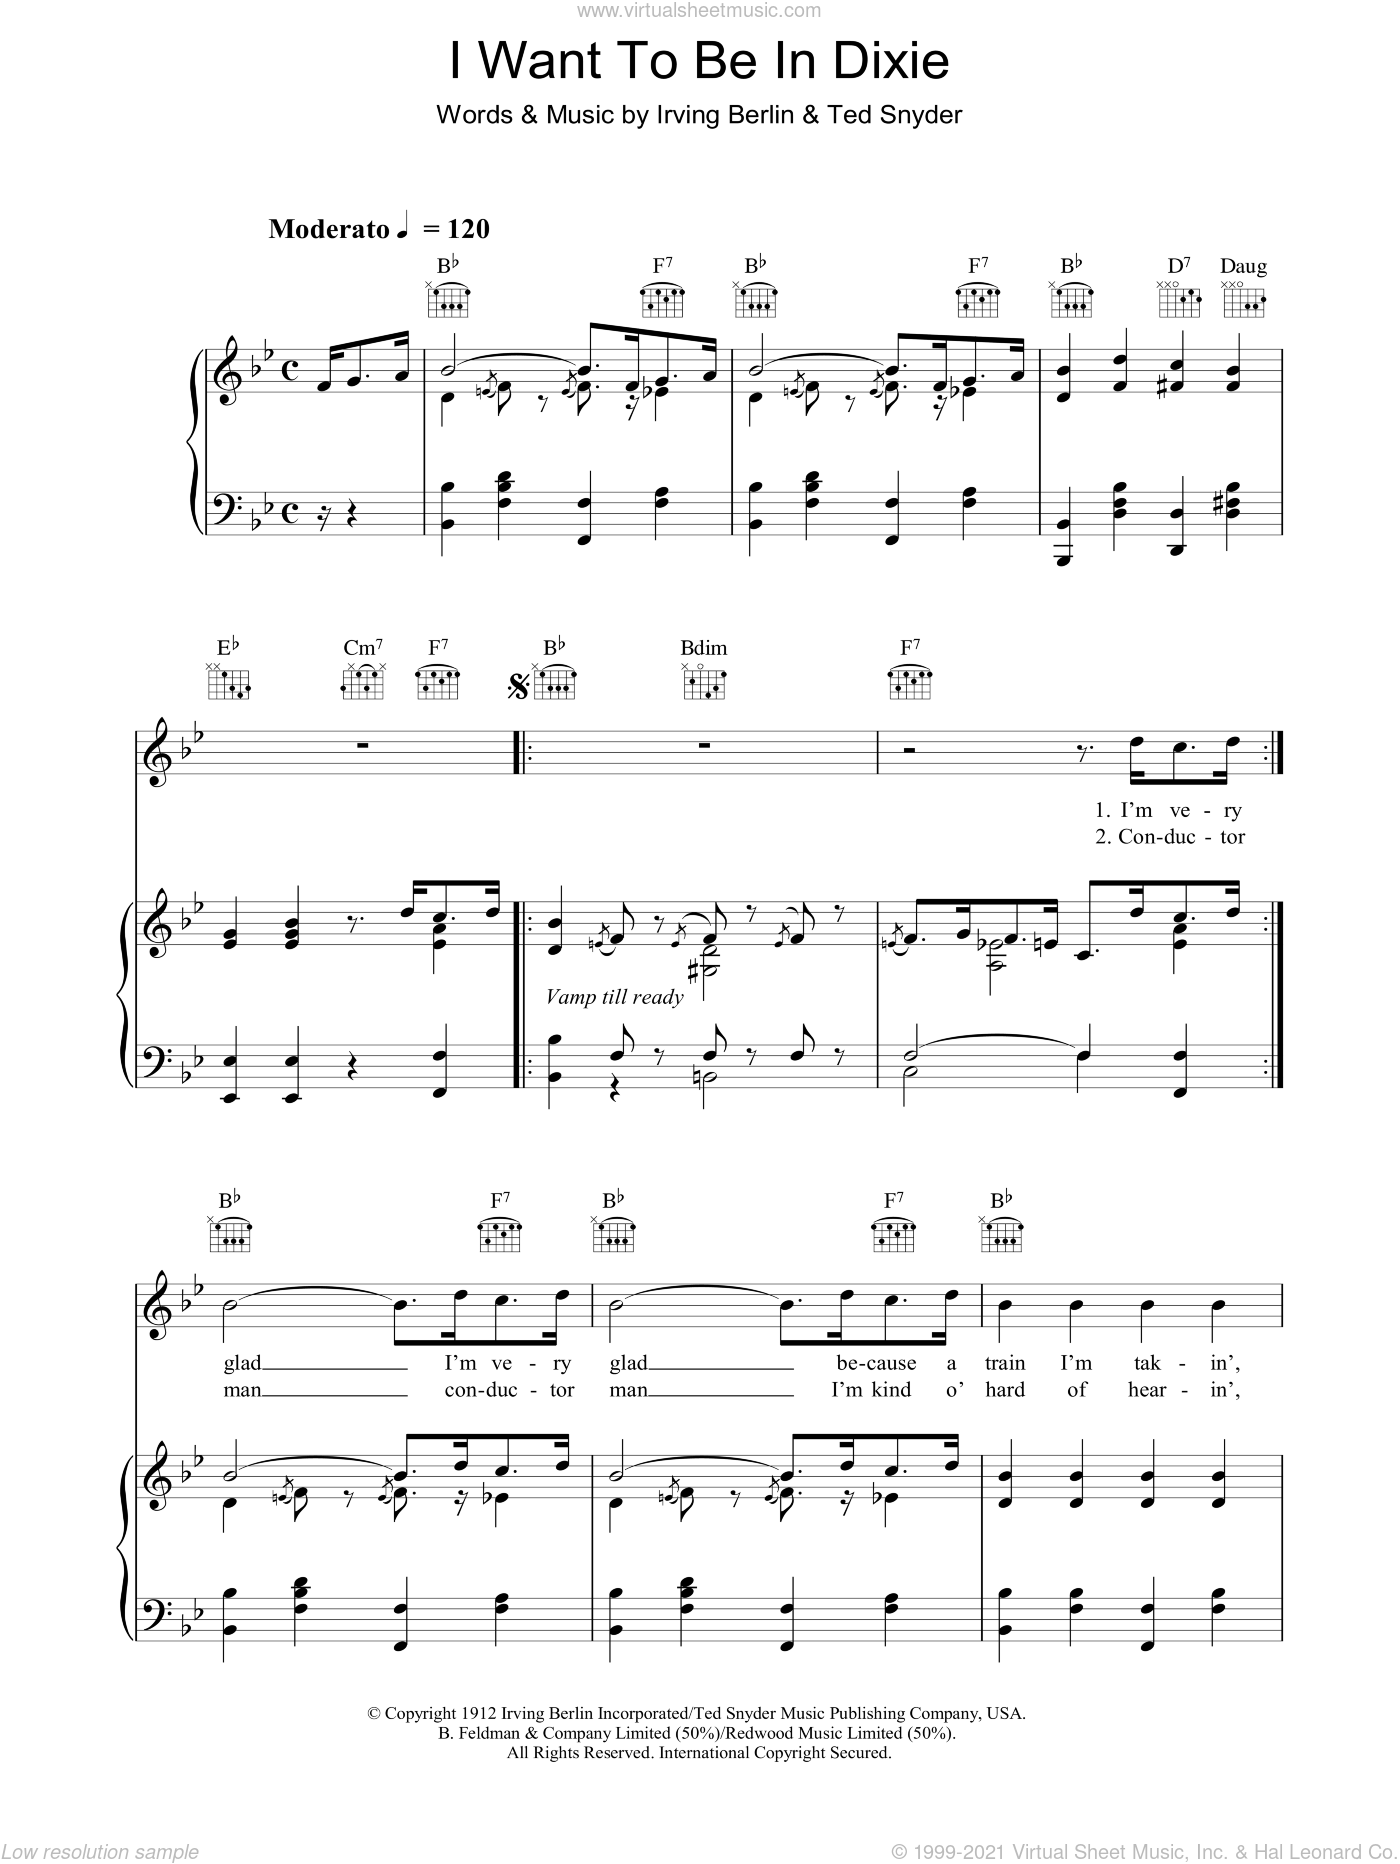 I Want To Be In Dixie sheet music for voice, piano or guitar by Ted Snyder and Irving Berlin. Score Image Preview.